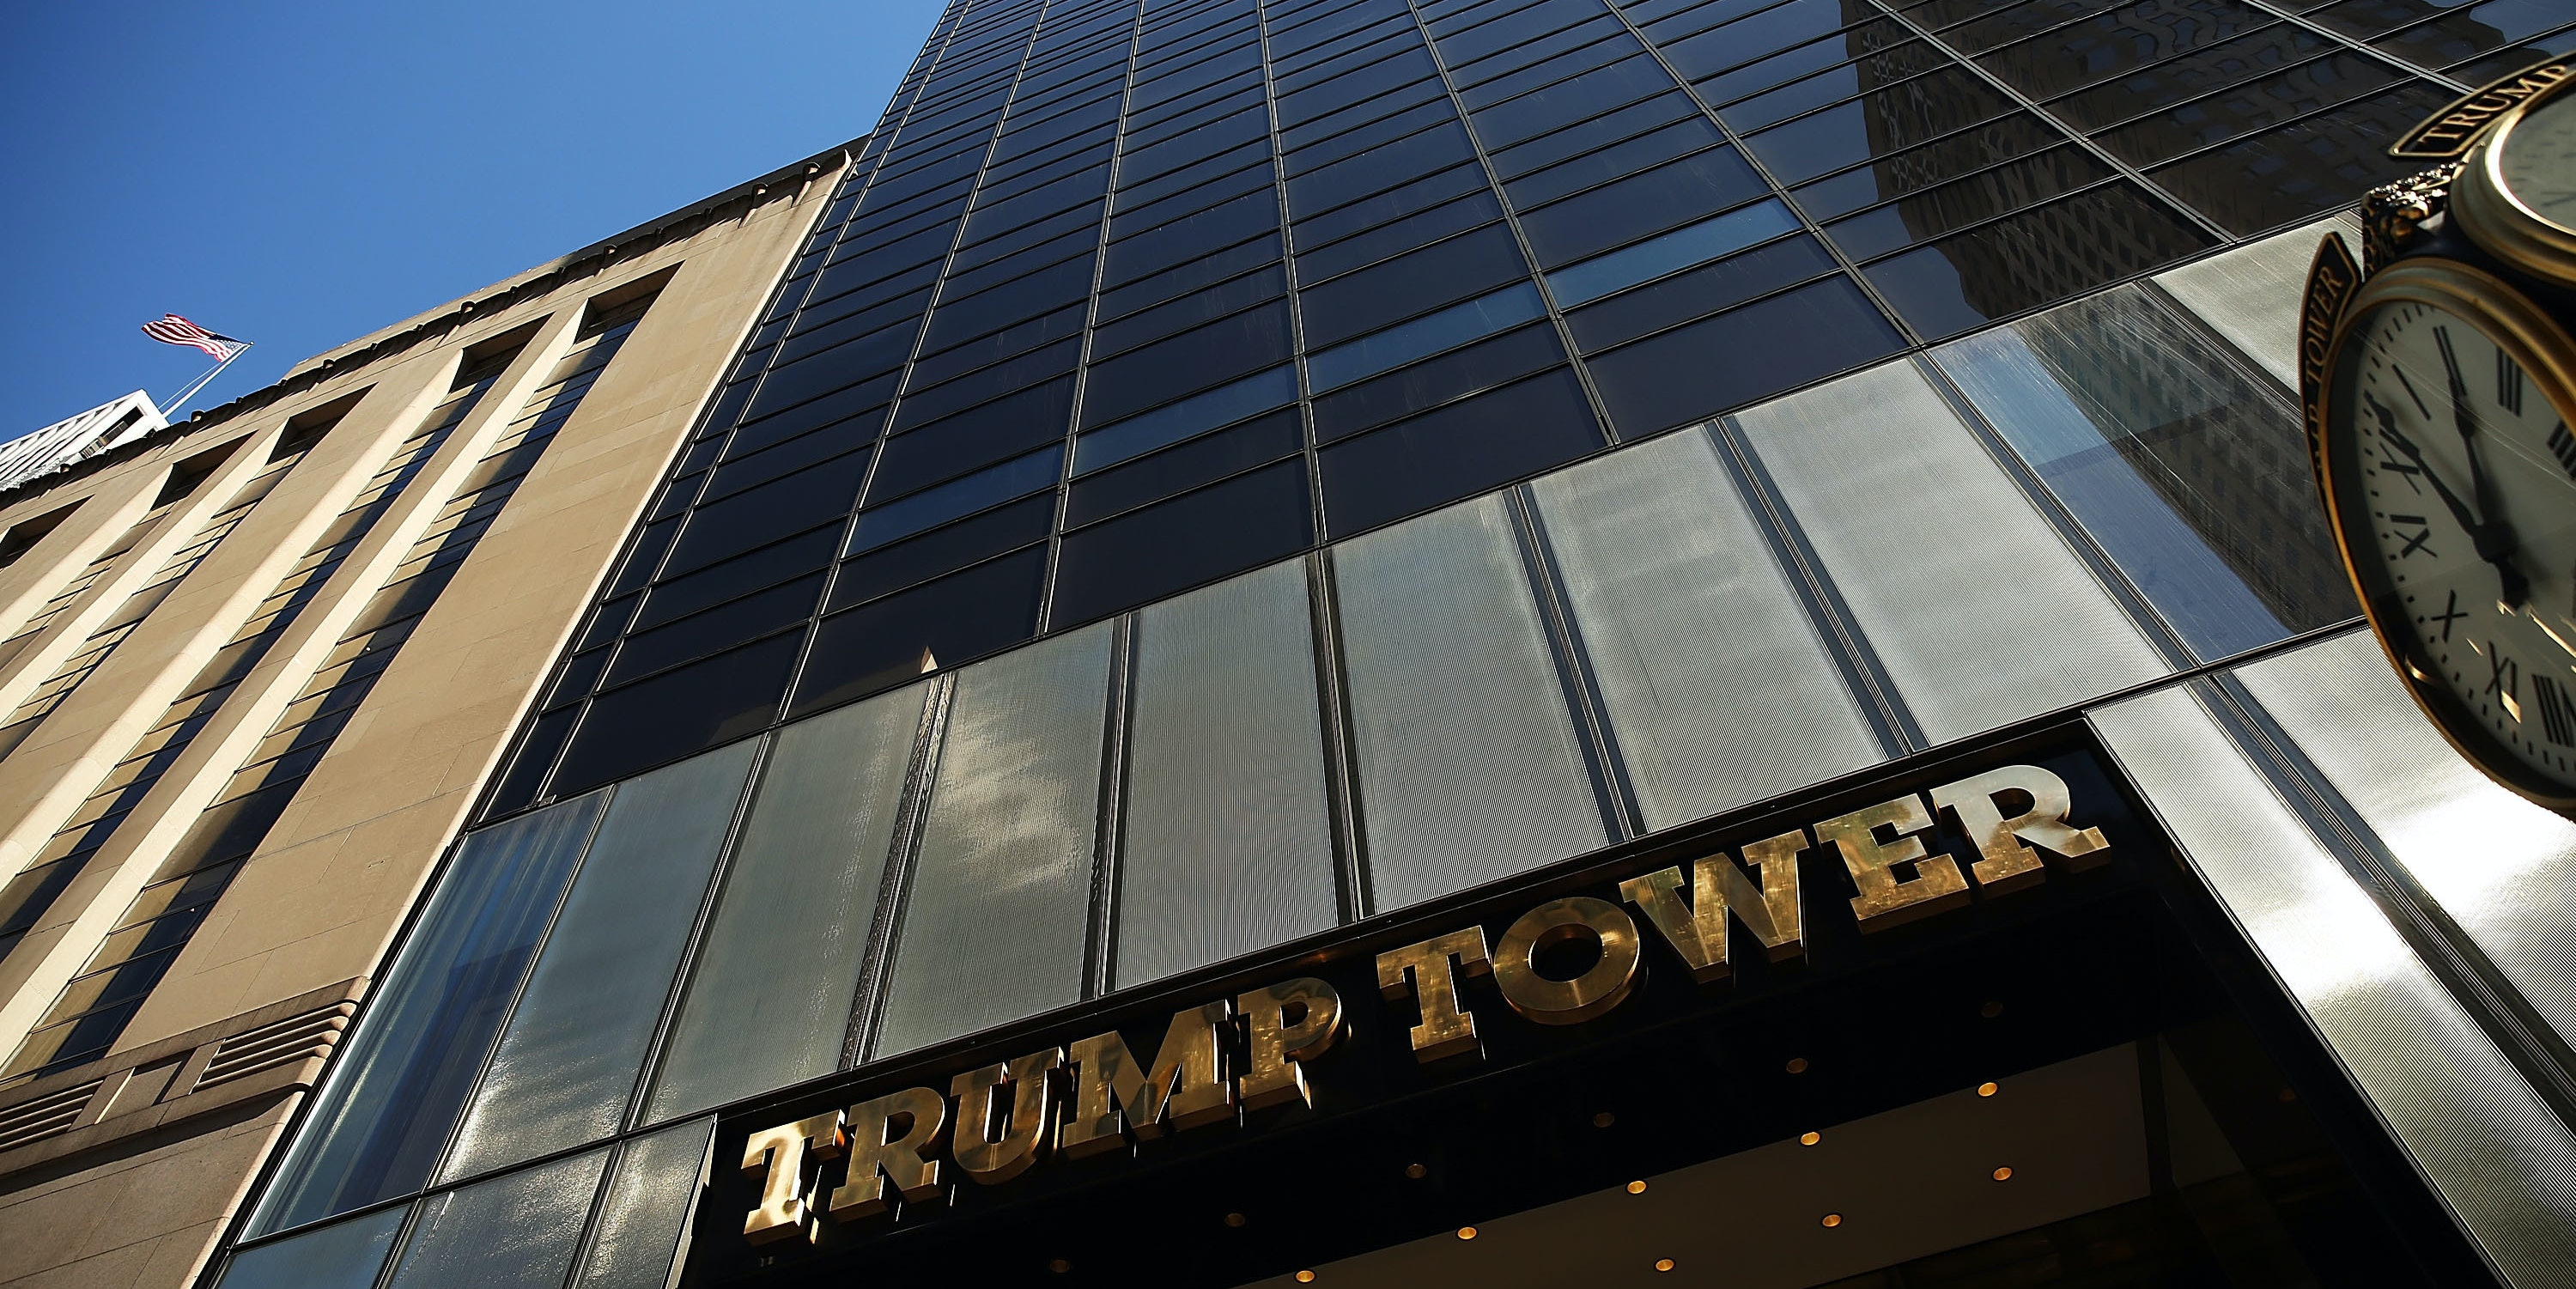 Trump Tower stands on 5th Avenue in Manhattan.